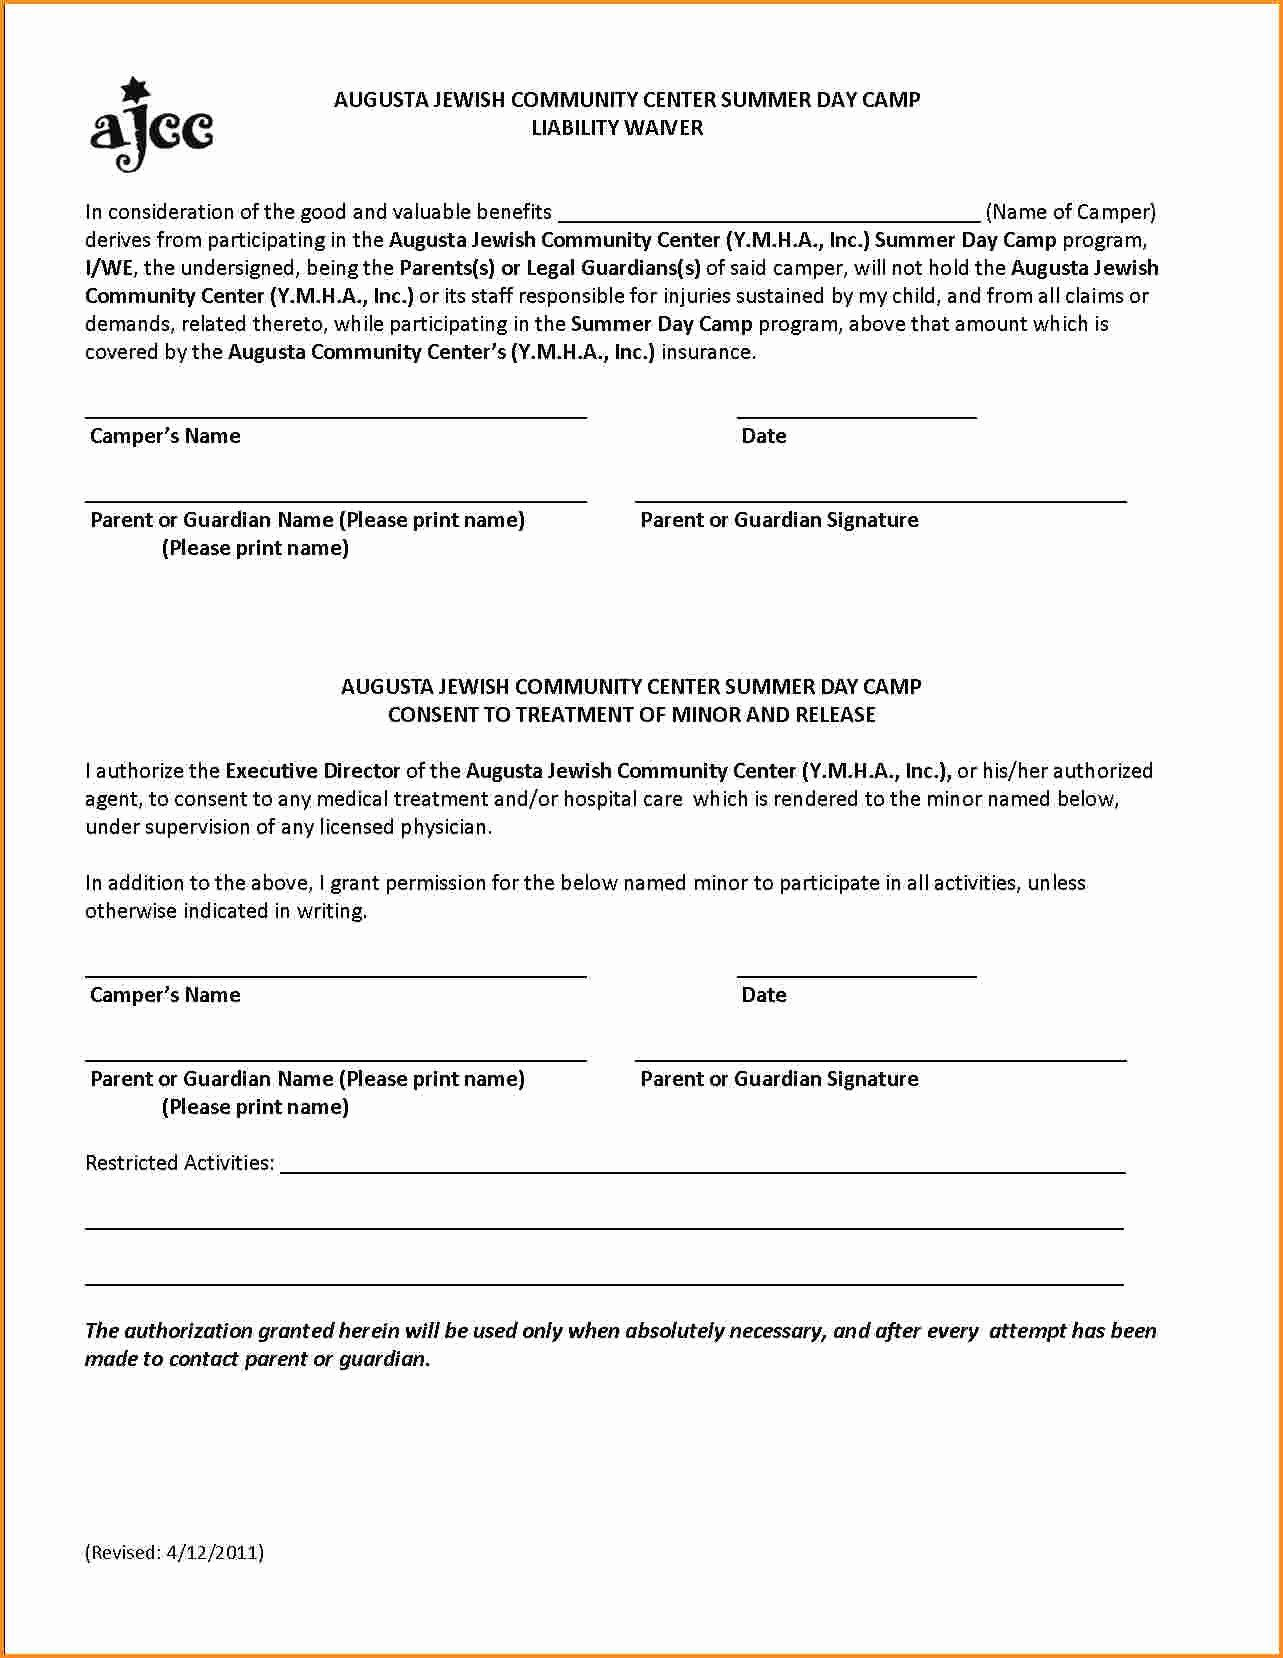 General Liability Waiver Form Template Lovely 28 Of Product Liability Waiver Form Template Liability Waiver General Liability Liability